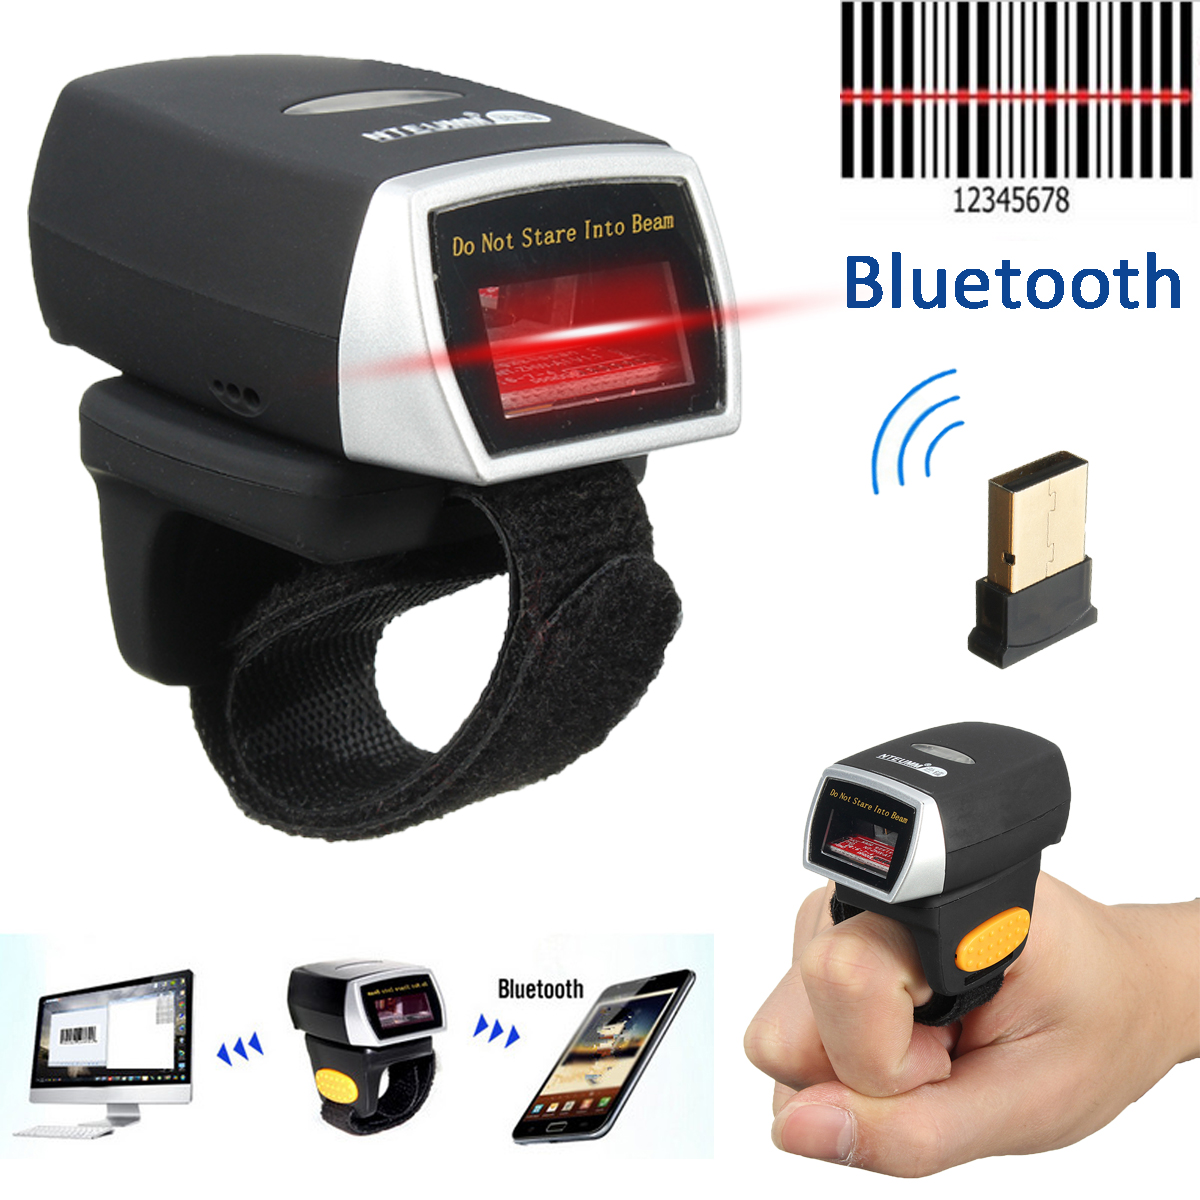 Mini Bluetooth Scanner Barcode Reader Laser Weirless Scanner Wearable Ring Bar Code Scanner 1D Reader Scan for Phone PC Tablet portable 1d bar code scanner bluetooth wireless mini ring finger barcode reader 1d barcode scanner for android ios windows